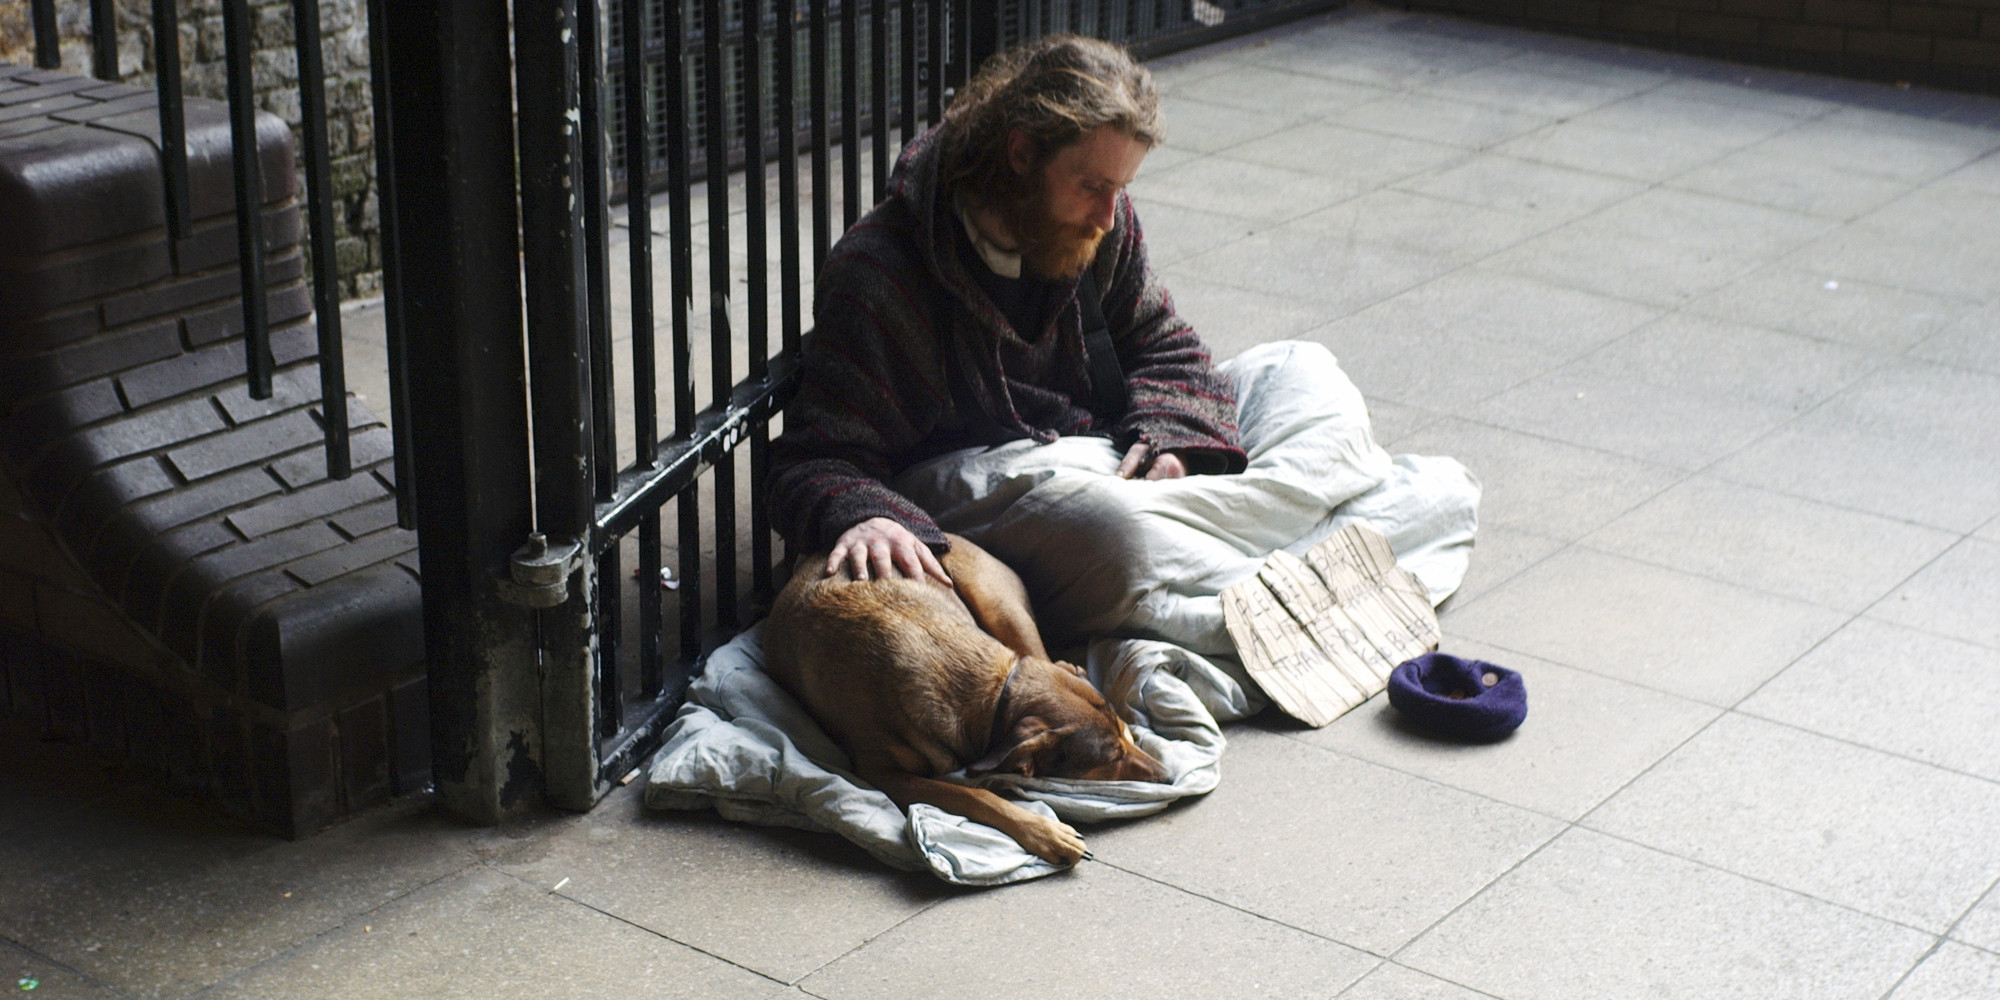 beggary homelessness and survey profiles beggars For change a study of street drinking and begging in camden & islington   the involvement of former homeless people and ex street drinkers in this  research was of course crucial, and we will ensure  local businesses who  responded to the postal survey were far  a much higher profile for promoting  health among.